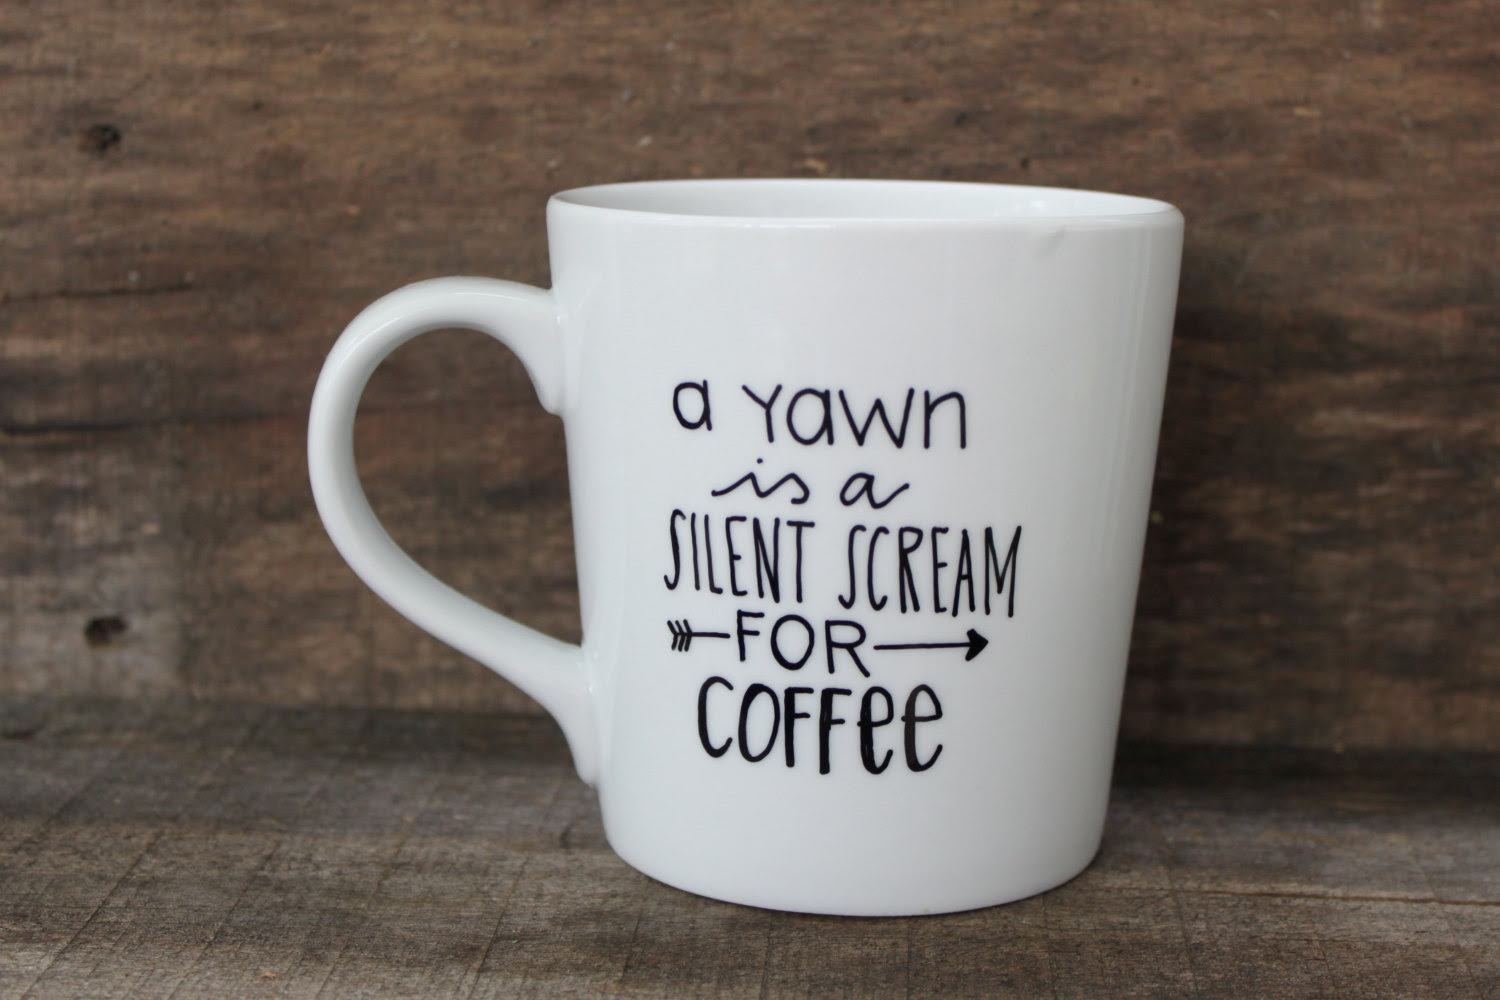 Quotes about Coffee mugs (26 quotes)